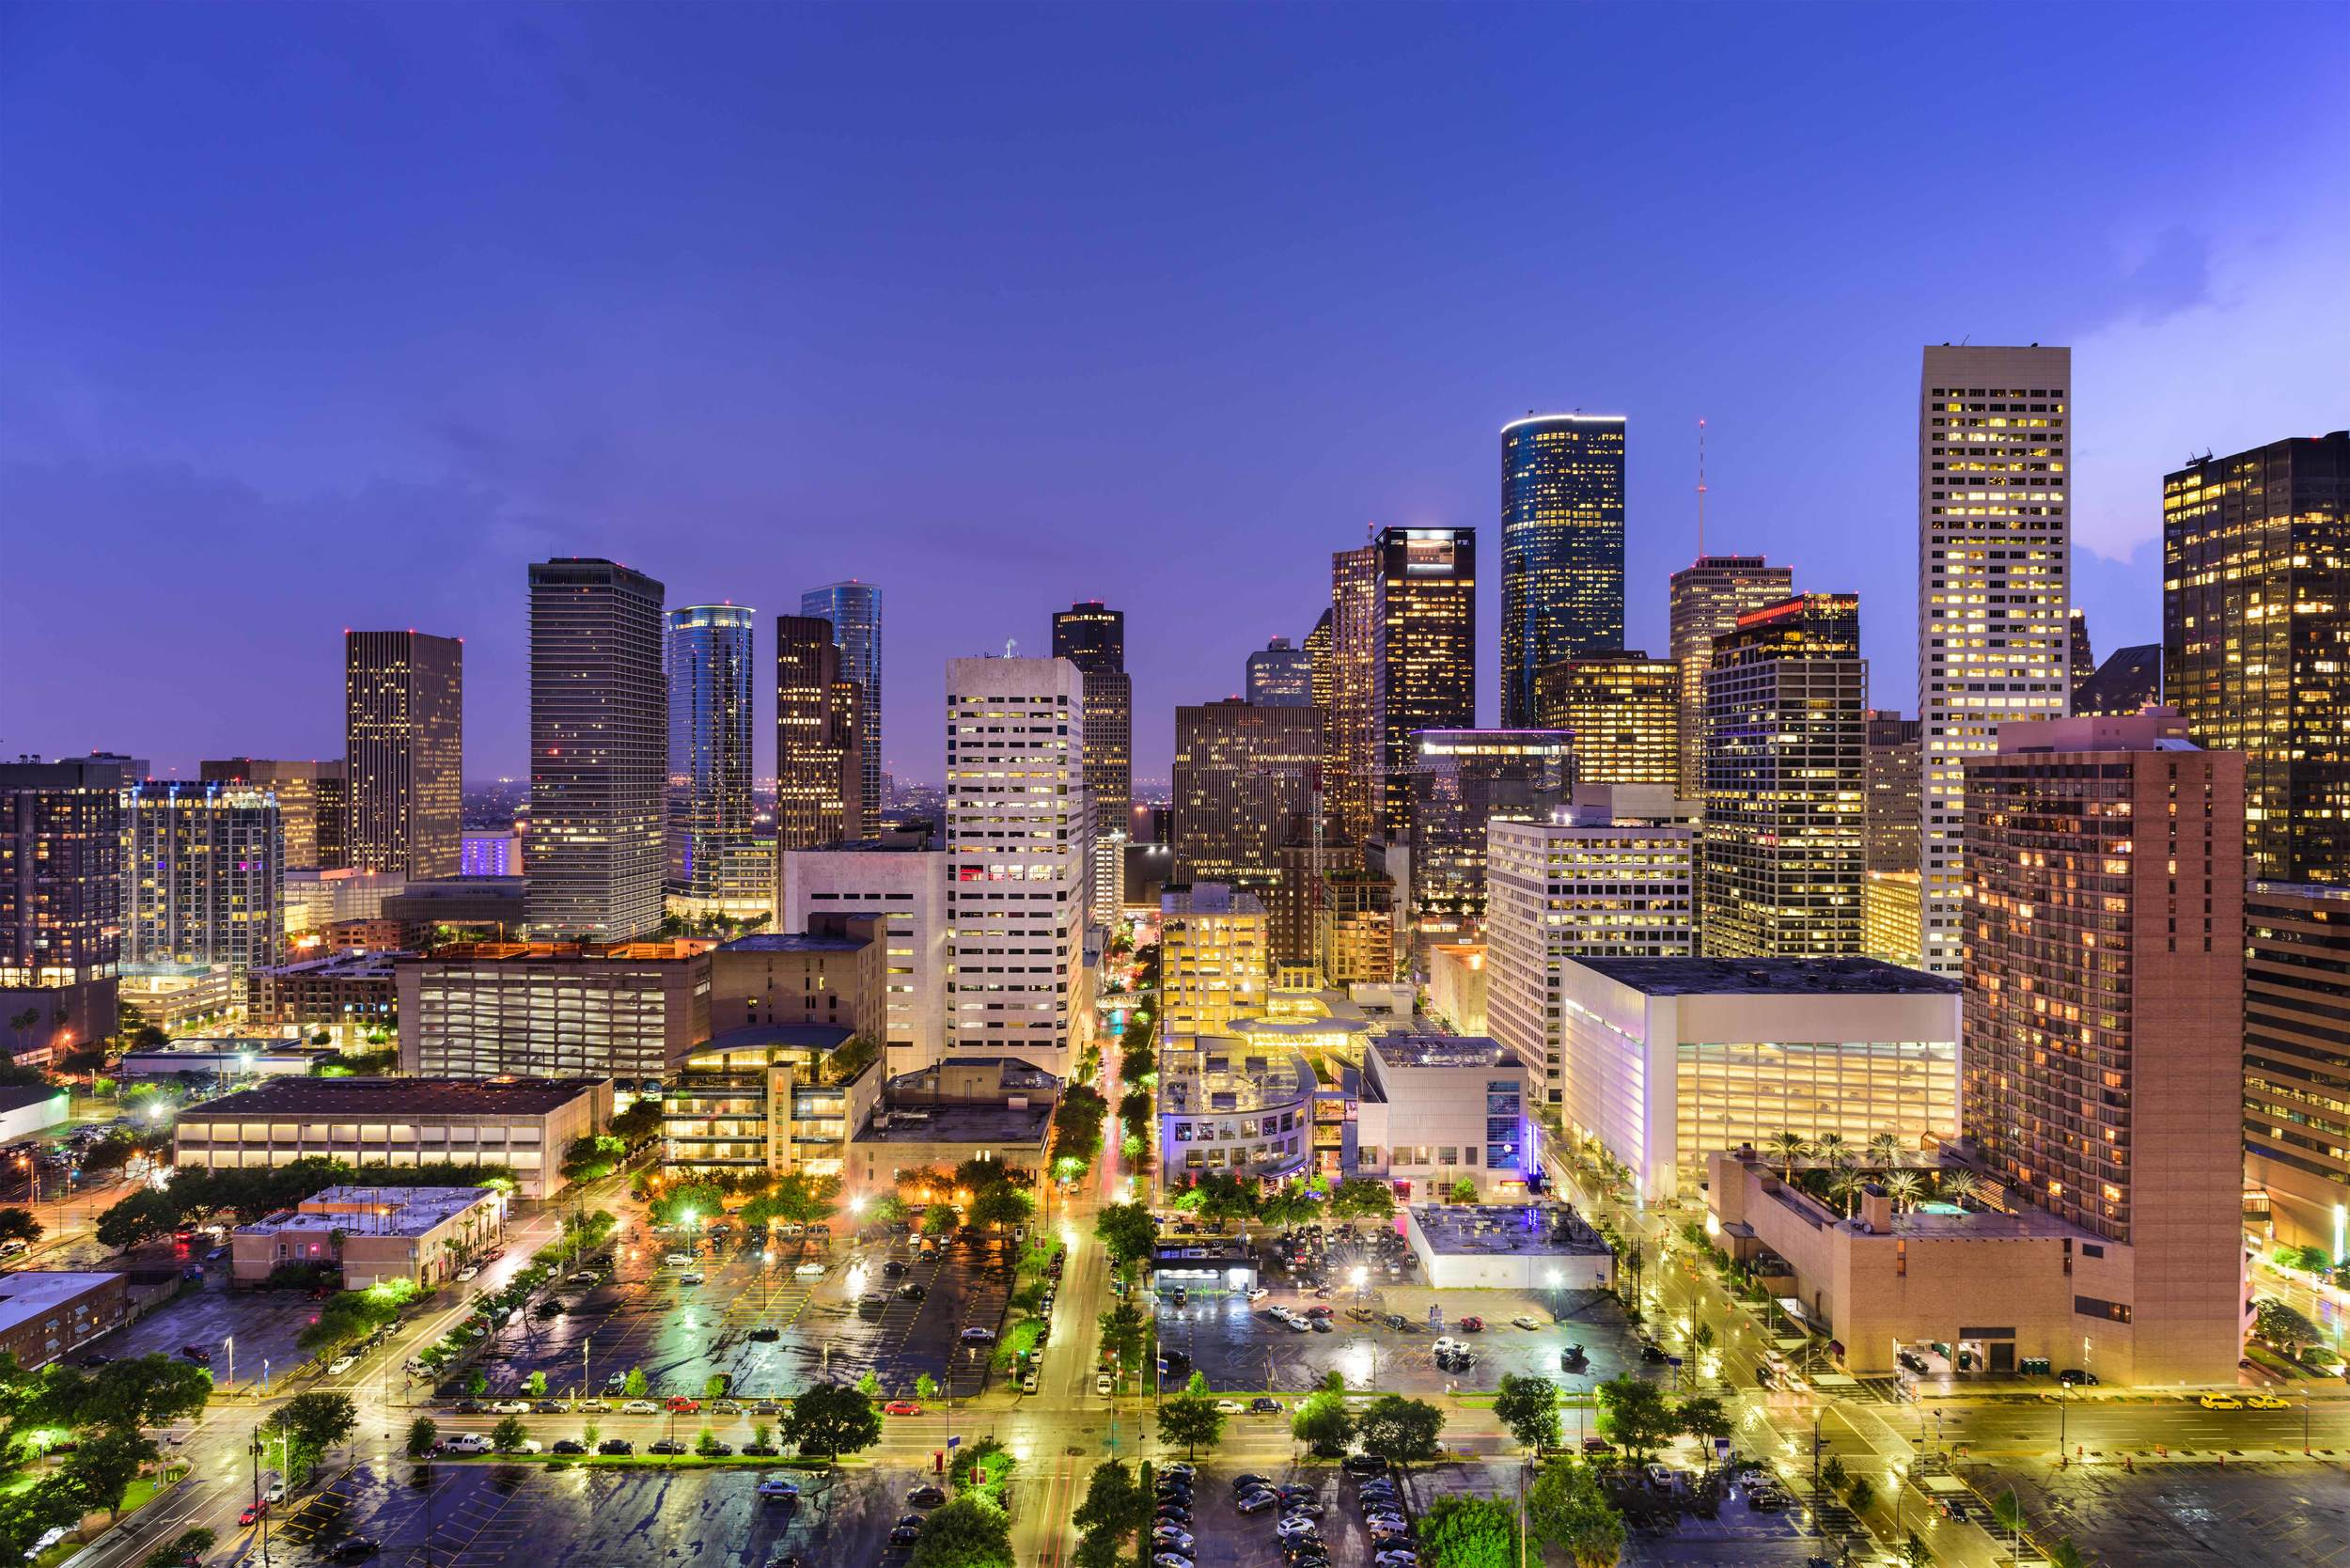 Houston - On the edge of Greenway Plaza, between Downtown and the Galleria, our Houston office has a commanding view of the Upper Kirby District, one of Houston's most popular neighborhoods to live, work, and play.